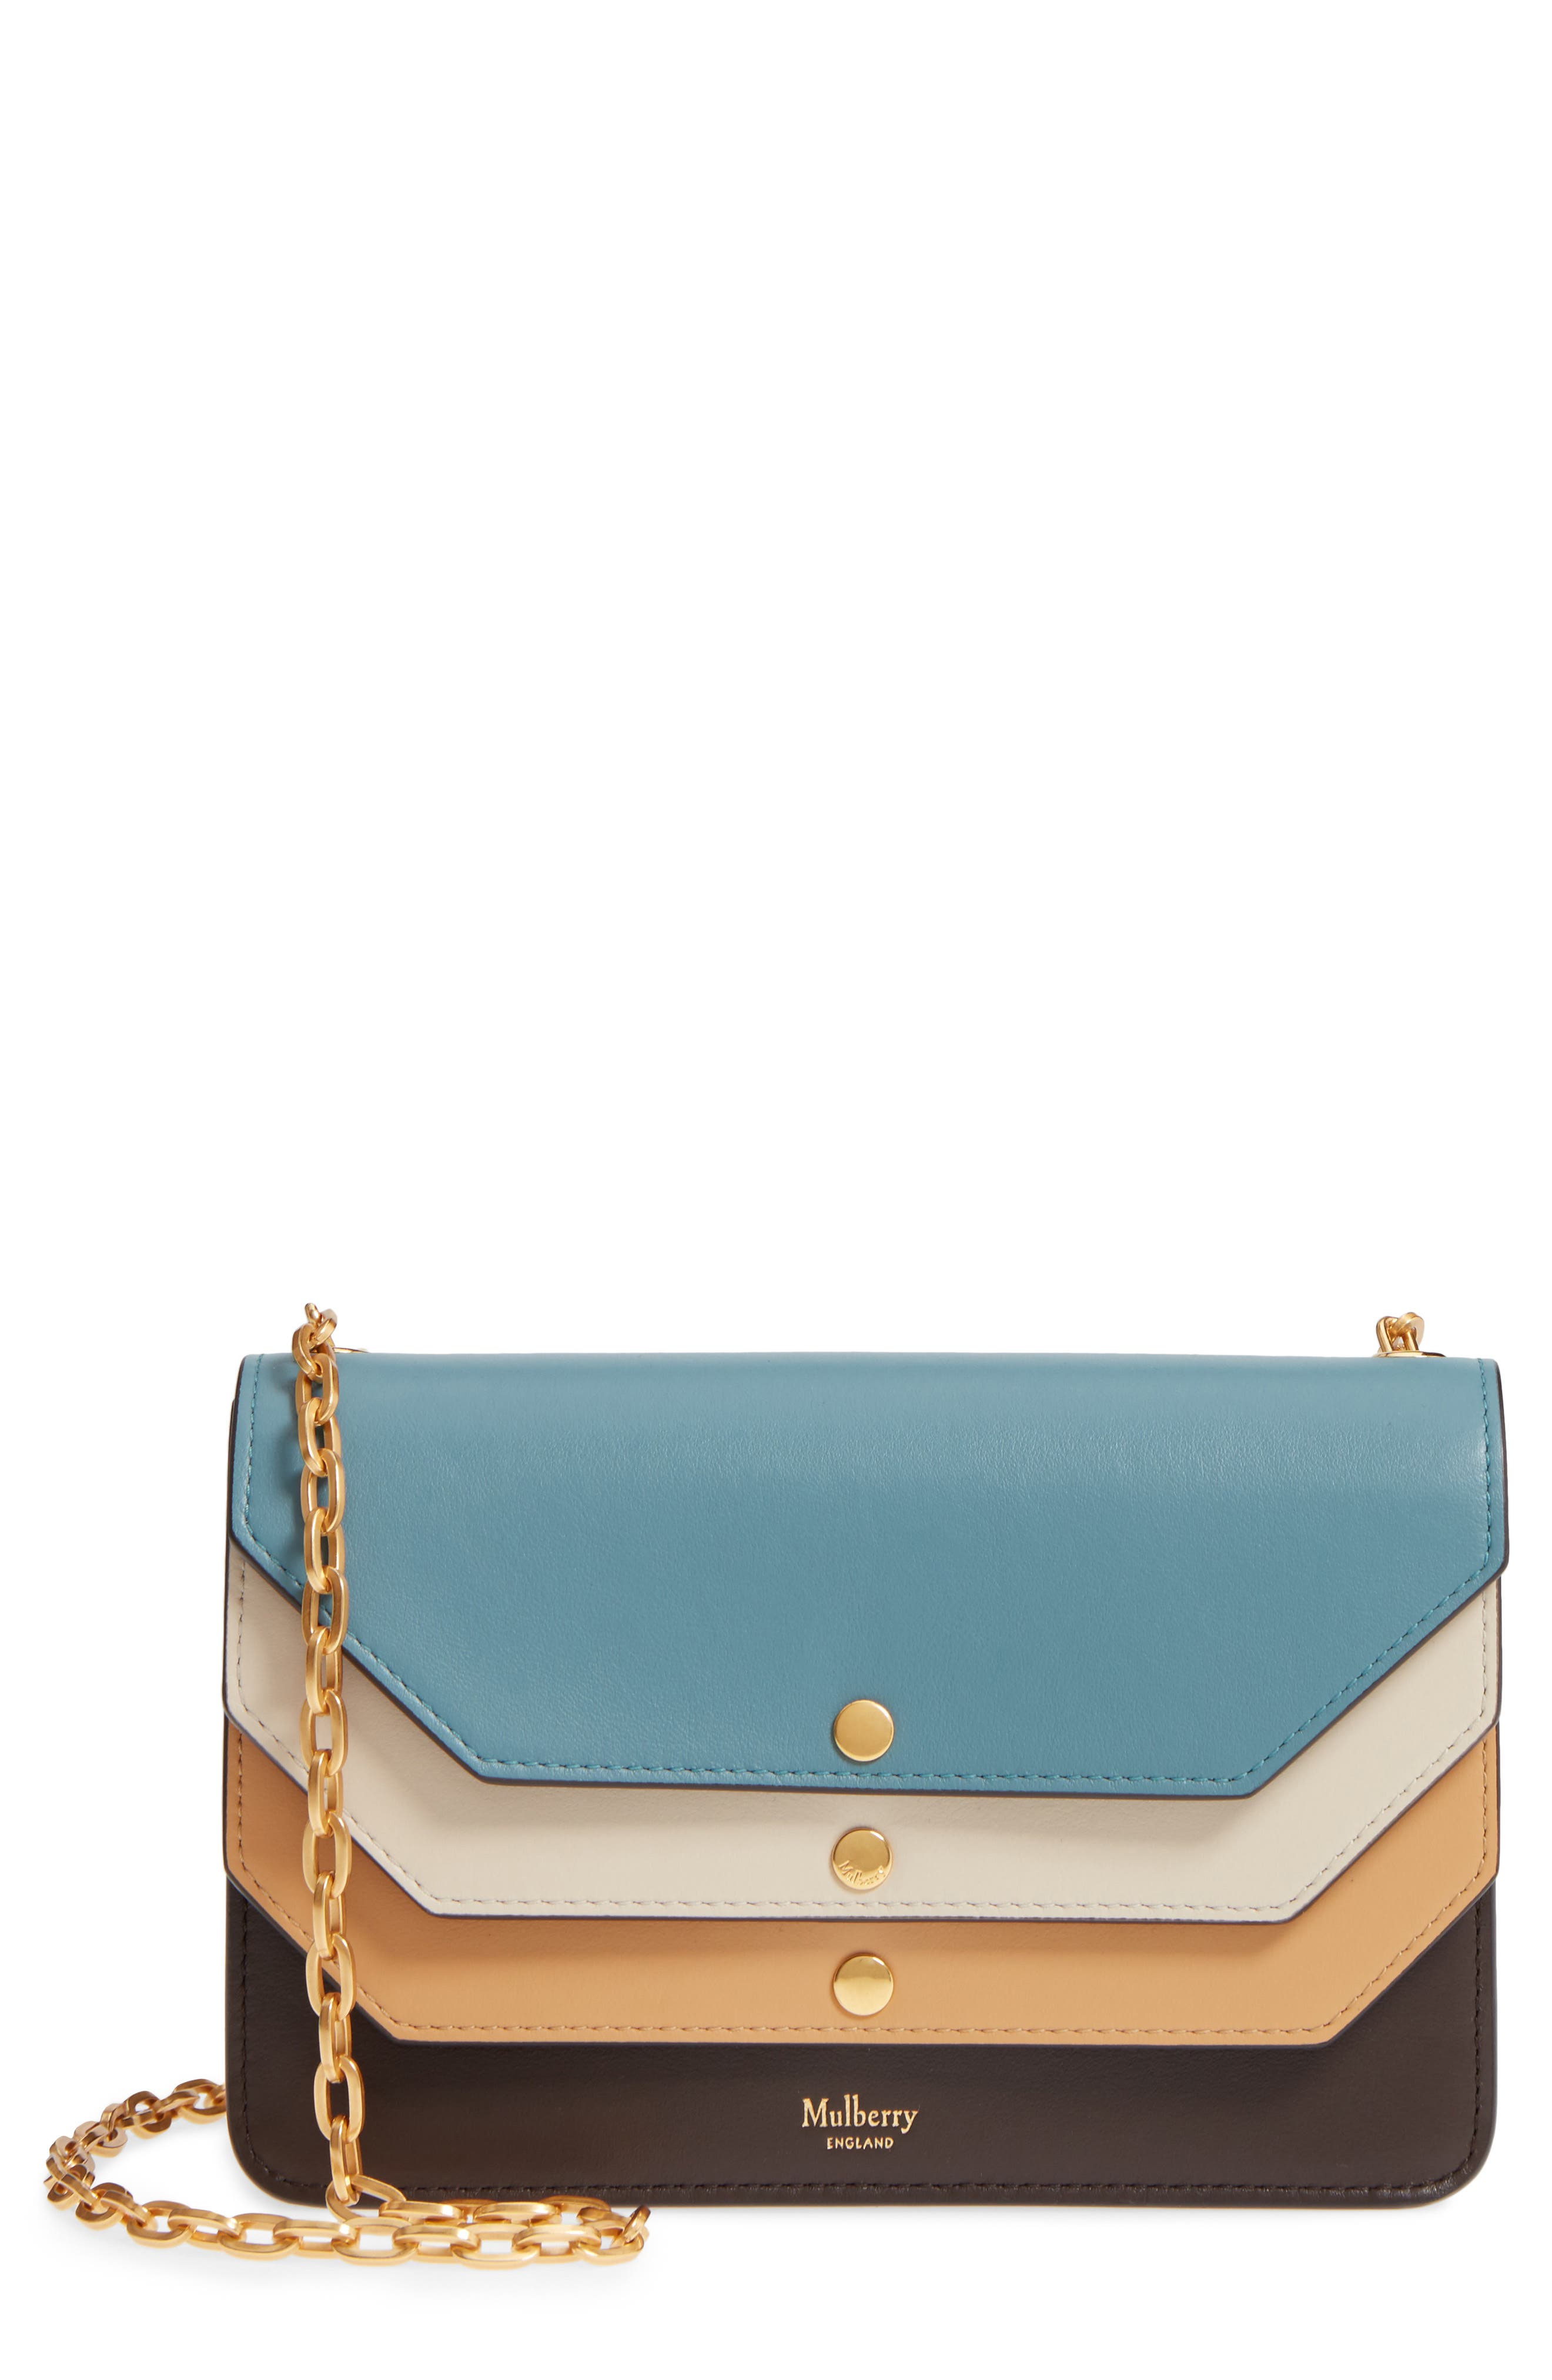 Multiflap Calfskin Leather Clutch,                             Main thumbnail 1, color,                             401